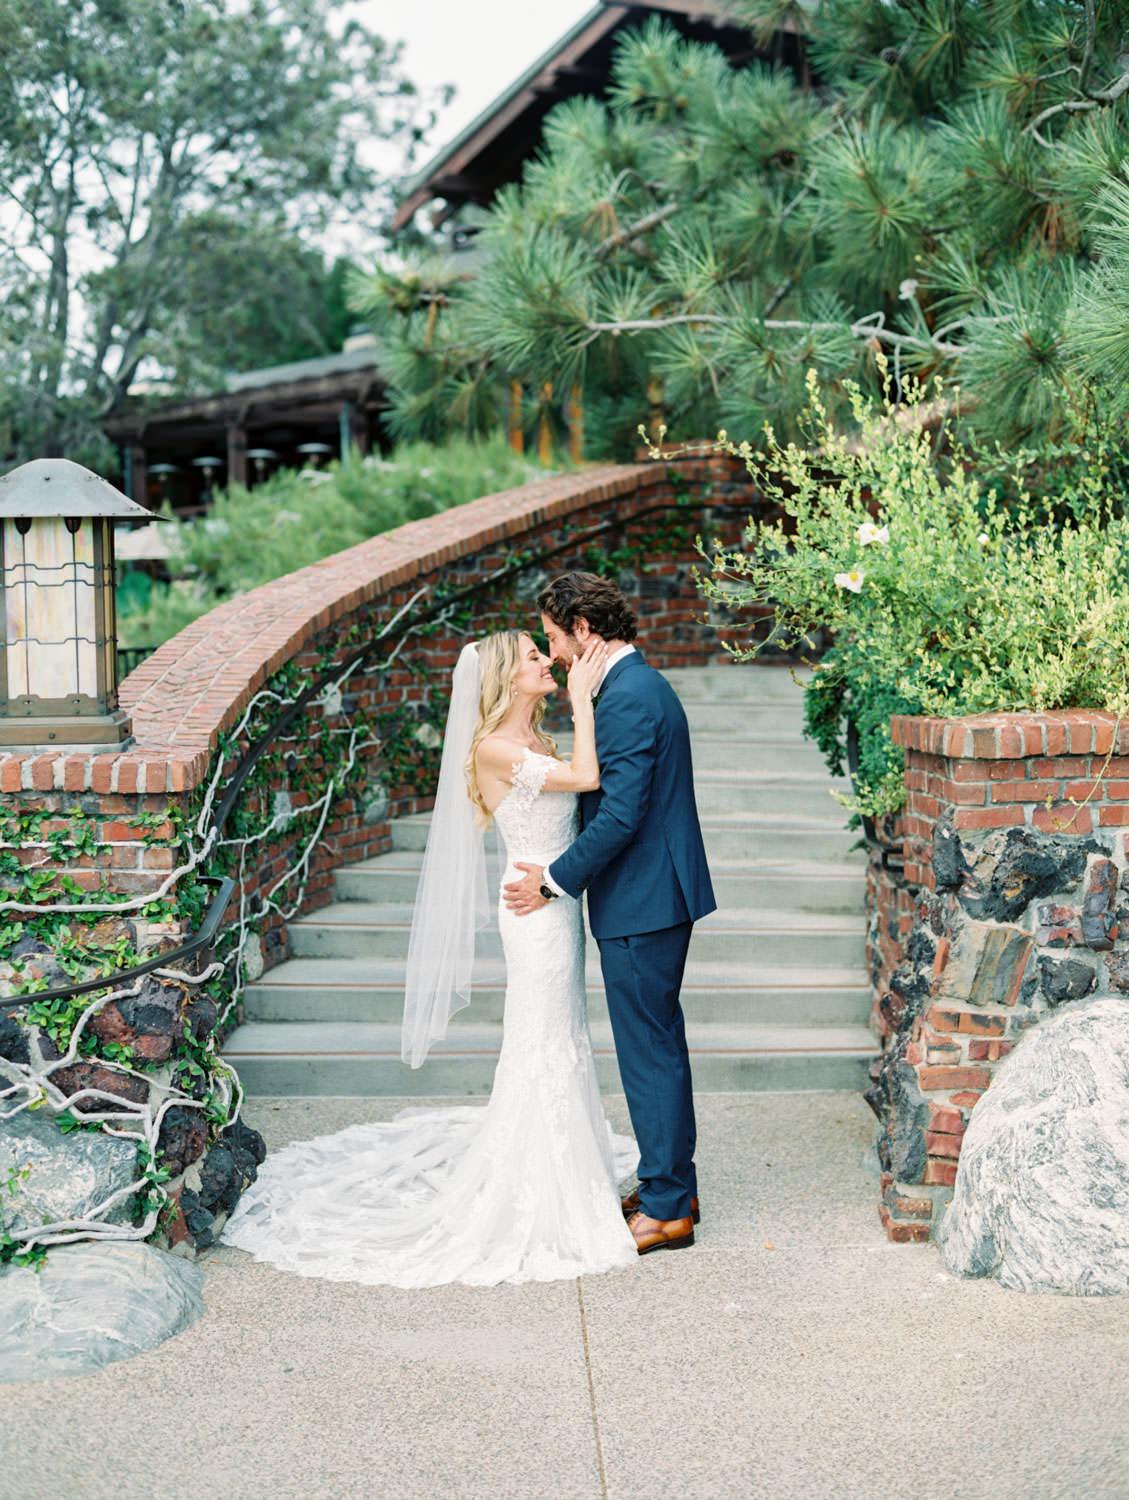 Bride in Pronovias off shoulder lace gown and long train and veil kissing groom in navy suit and rose boutonniere, Lodge at Torrey Pines wedding, film photography by Cavin Elizabeth Photography